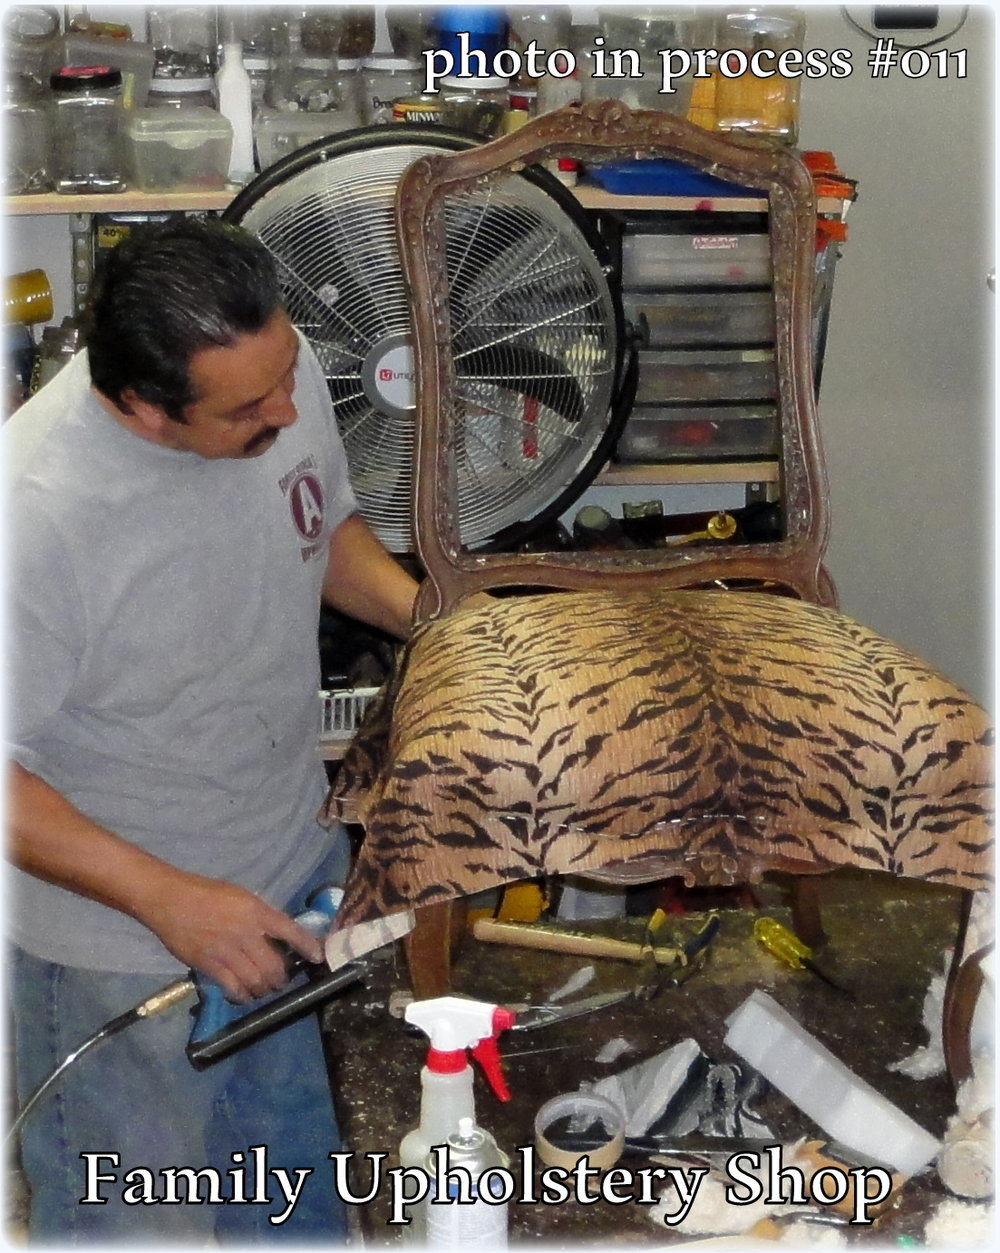 animal print chair before photo ayala shop.jpg